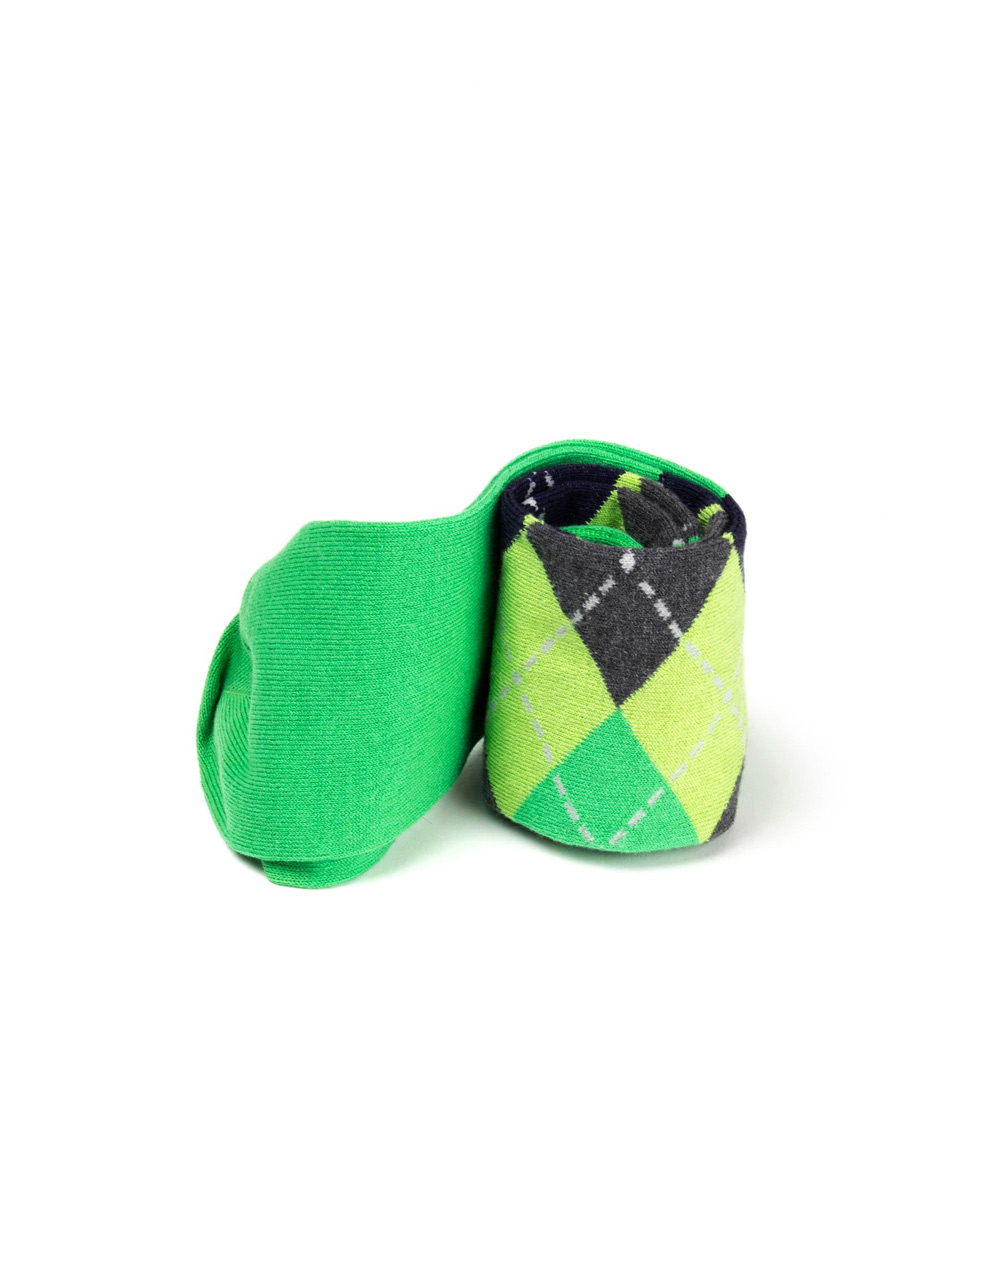 Green rhombi socks - Backside